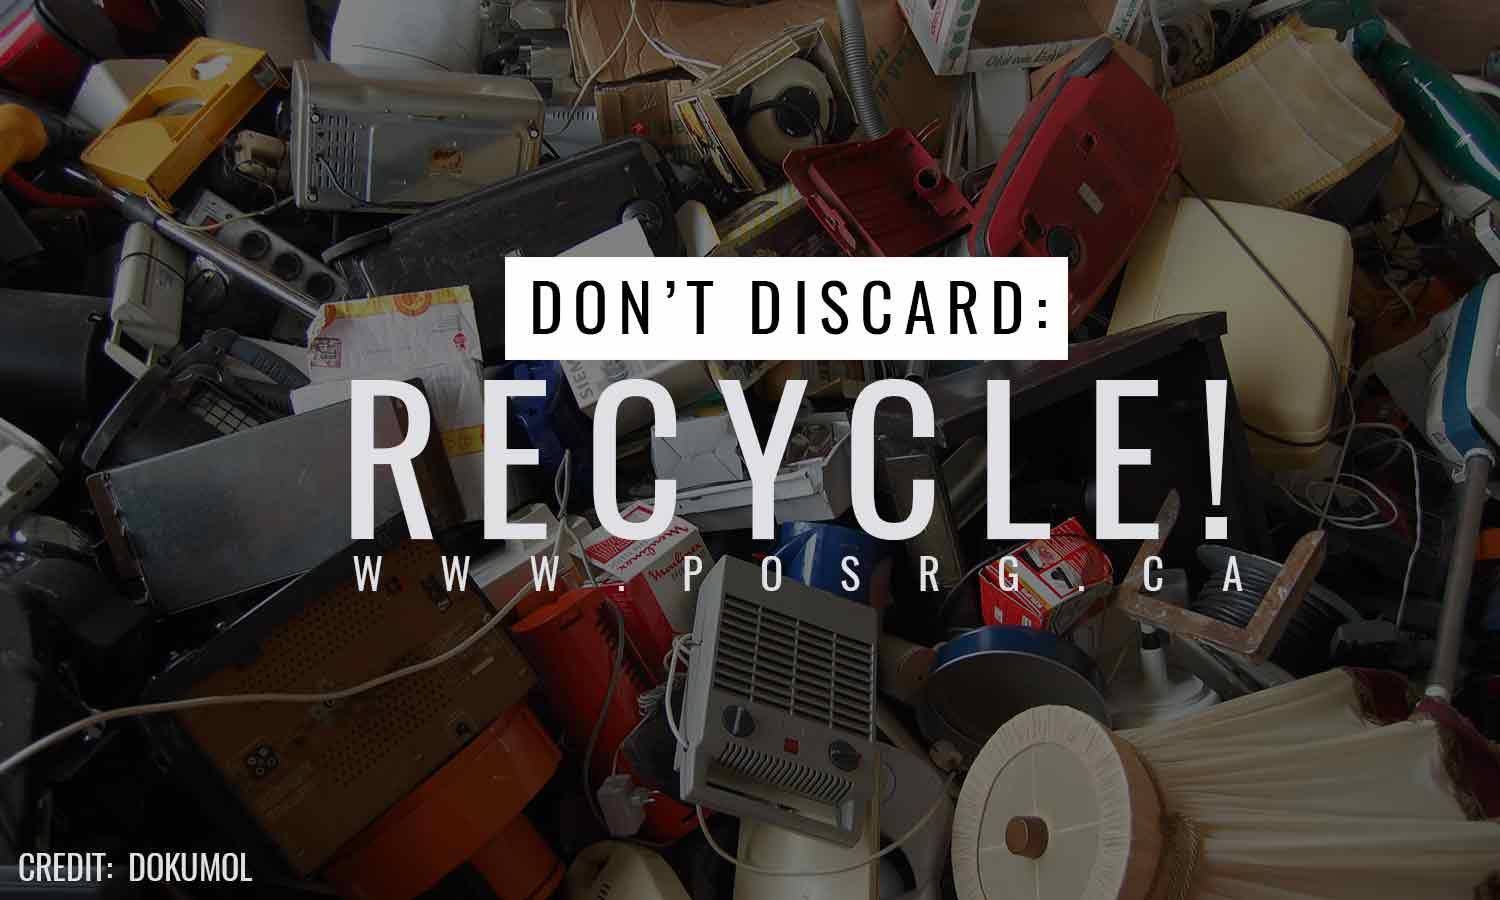 Don't discard Recycle